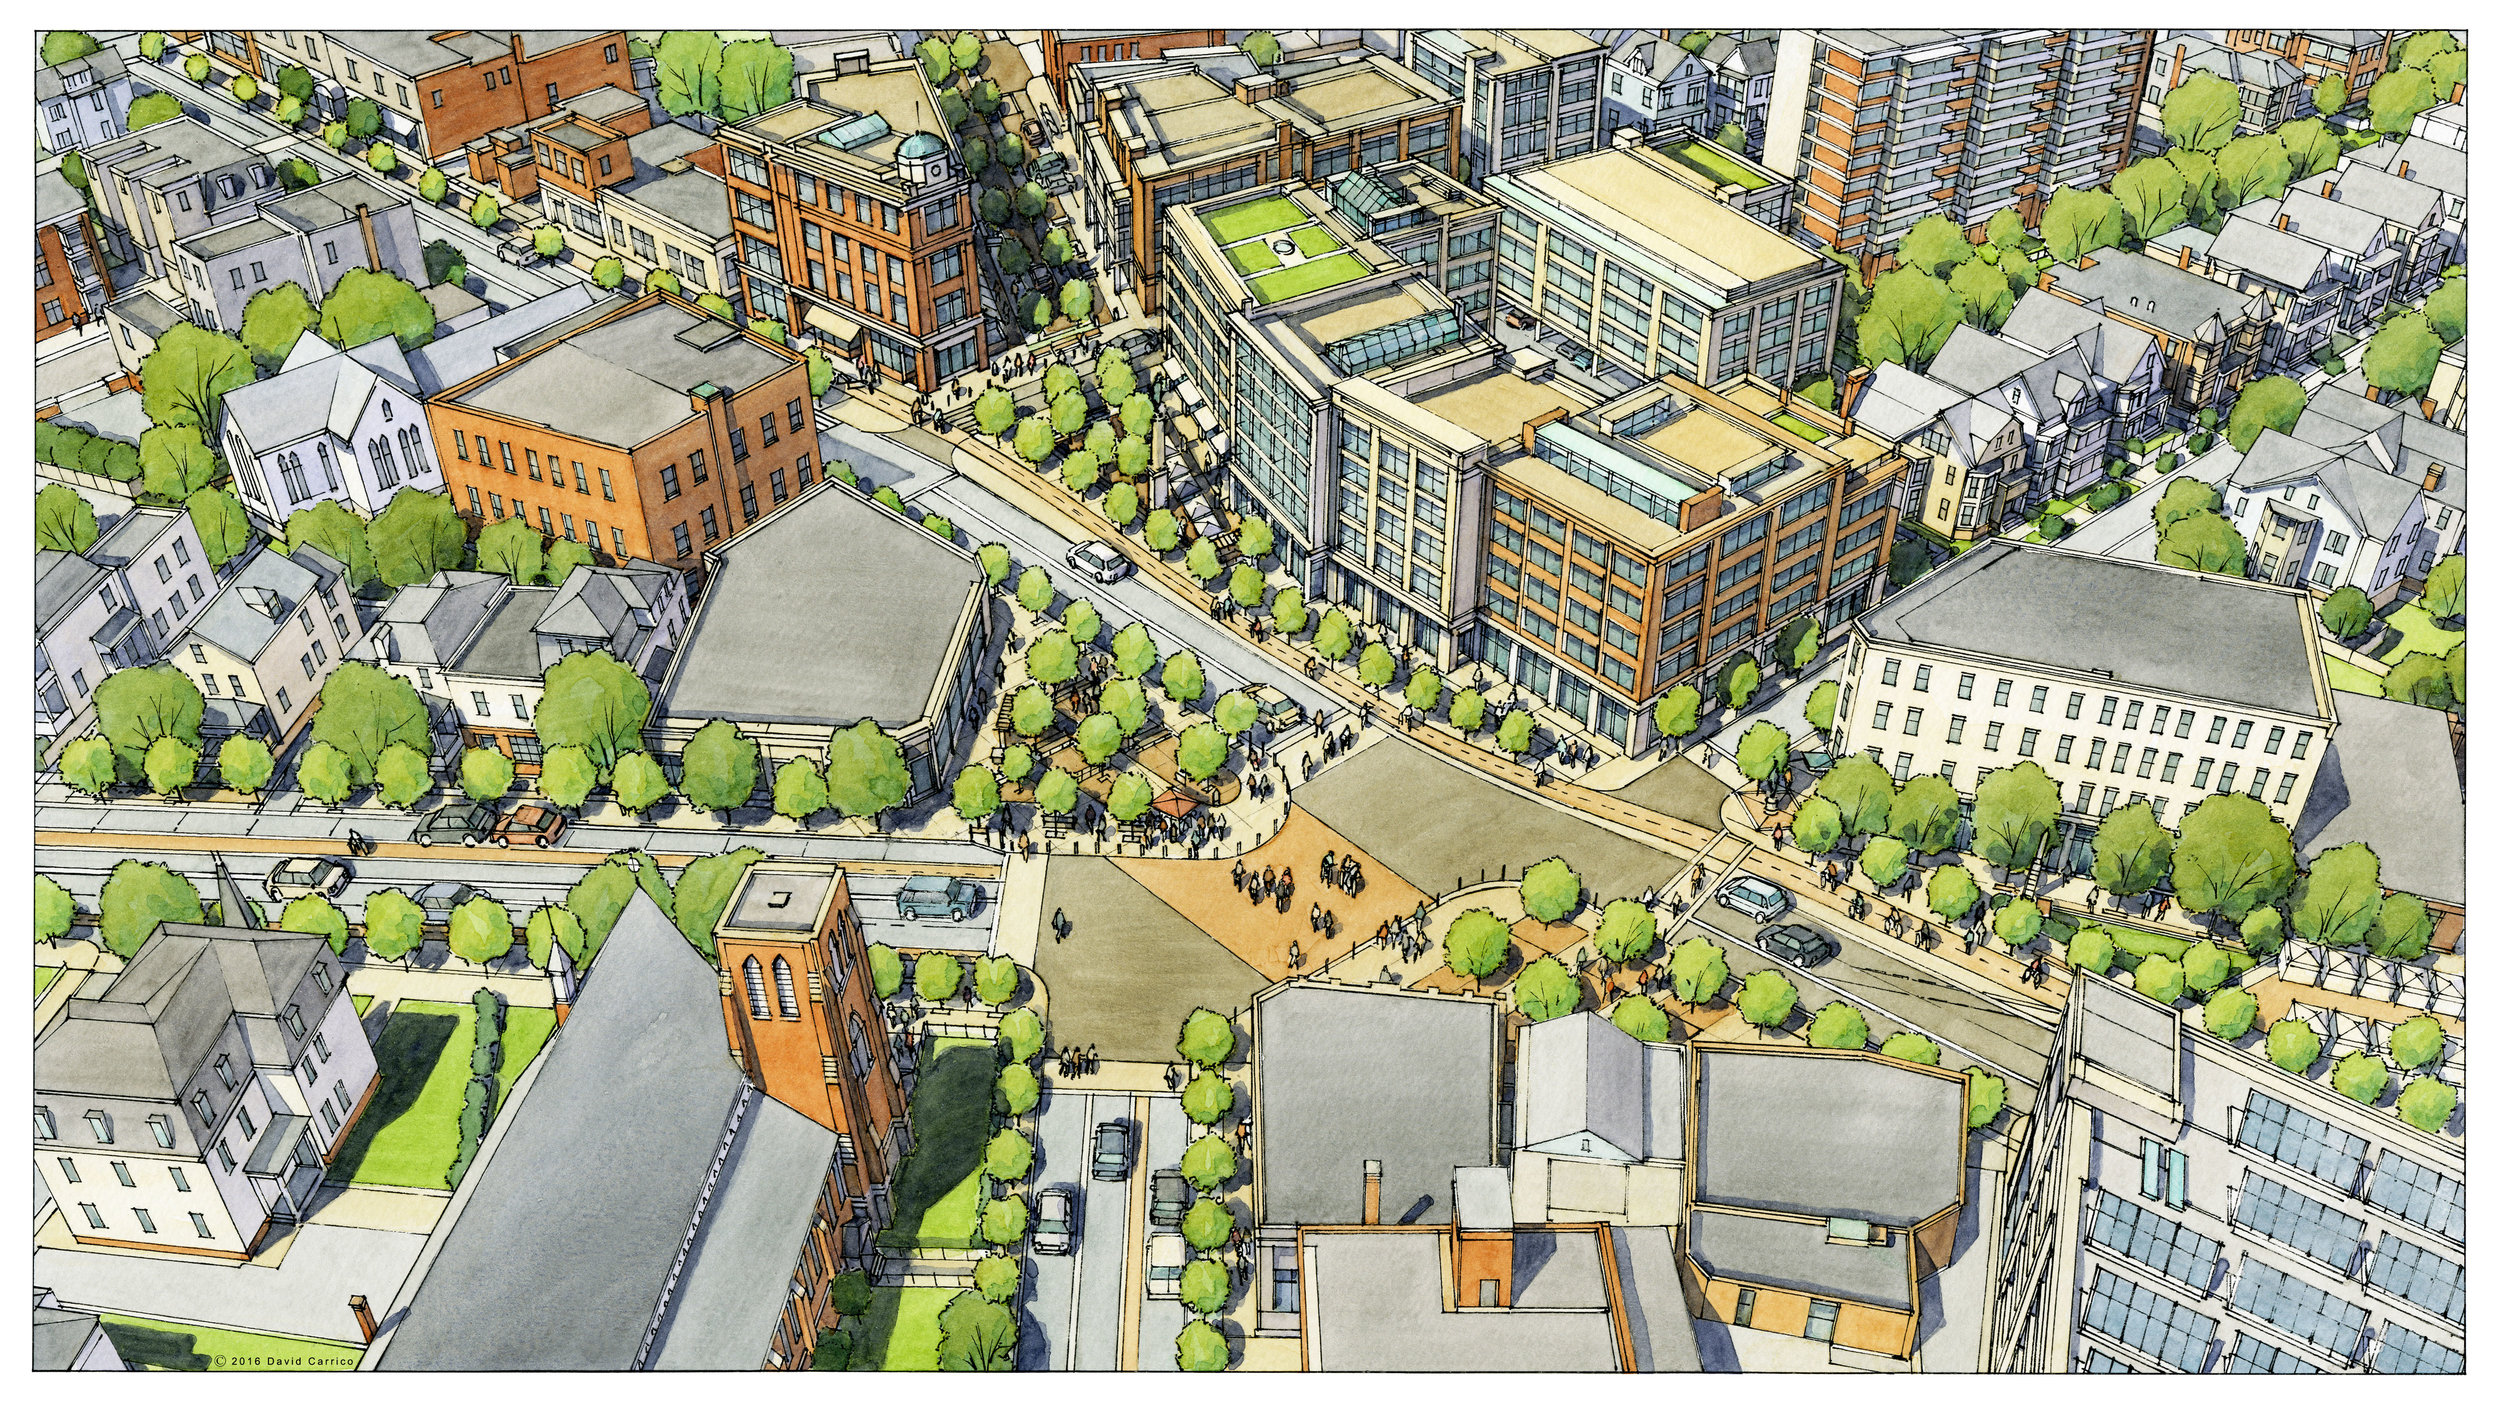 Union-Square-Somerville-Ave-Intersection-Birdseye-Proposed.jpg